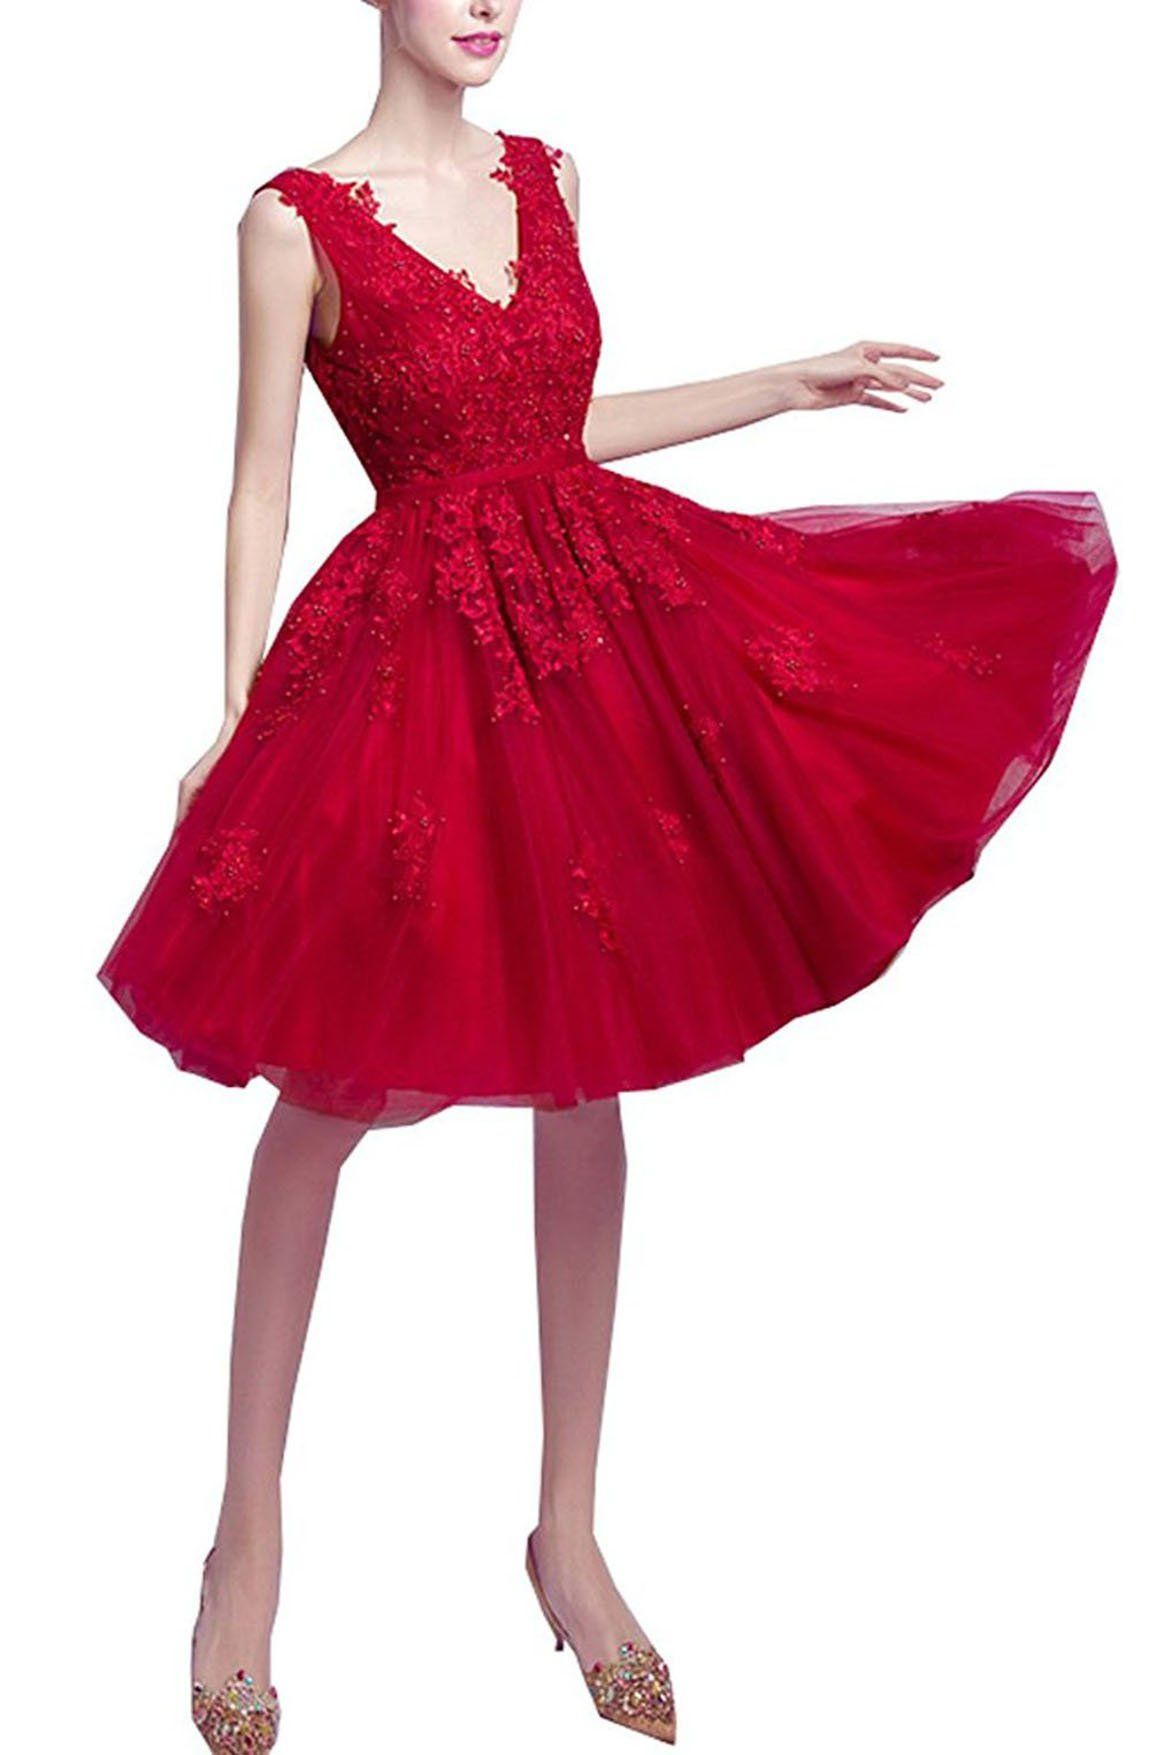 Brl mall short homecoming party ball gowns lace vneck bridesmaid